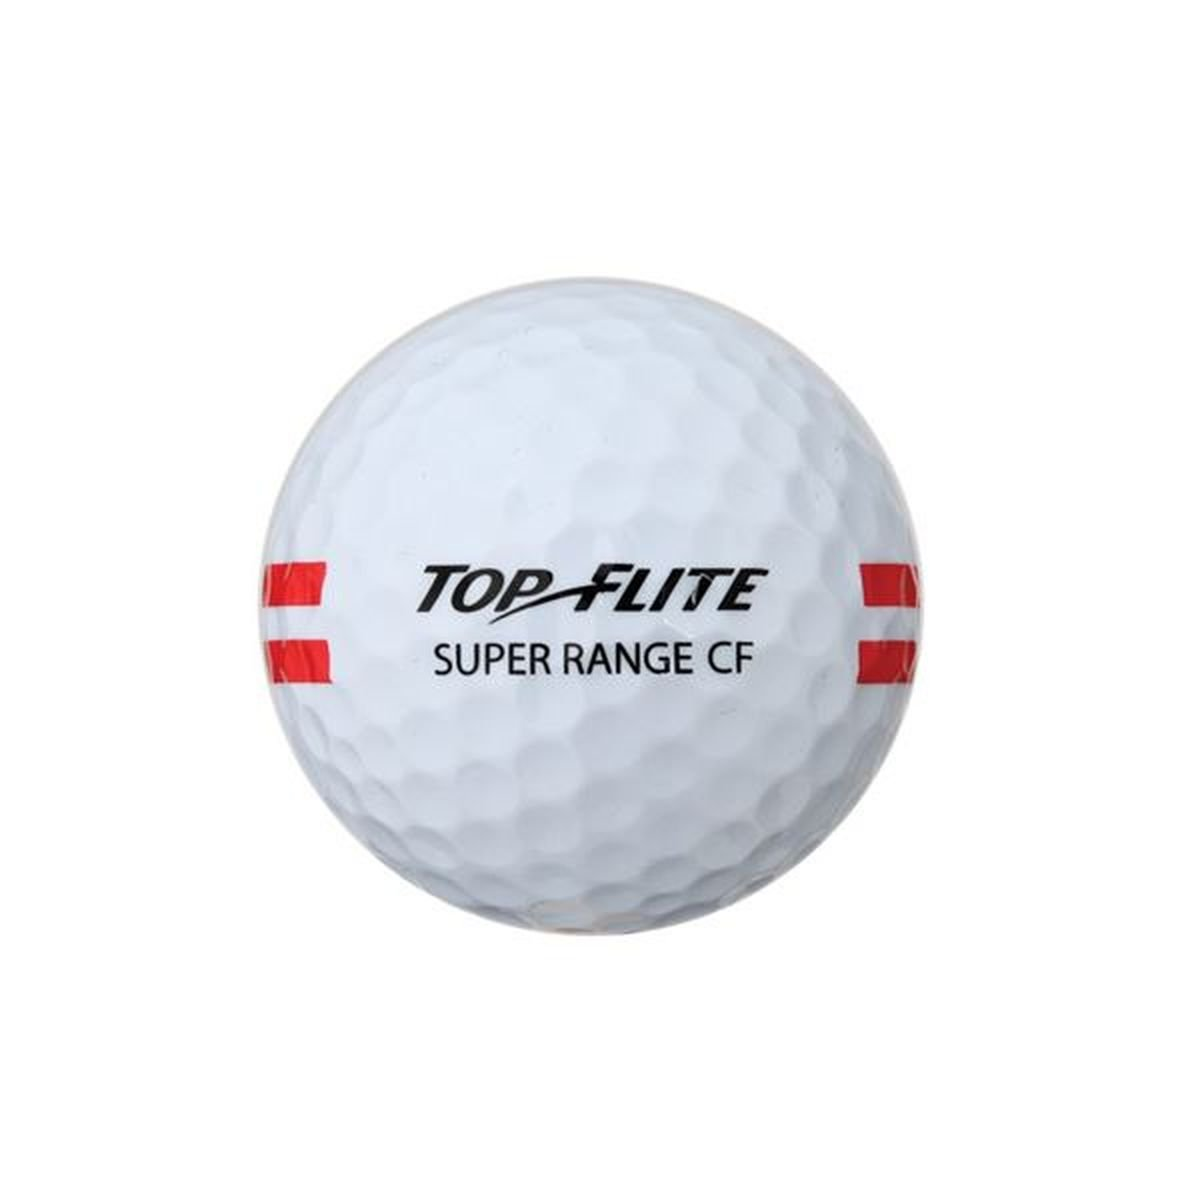 24 Pack Top Flite Super Range Restricted Flight Golf Balls - White by Top Flight